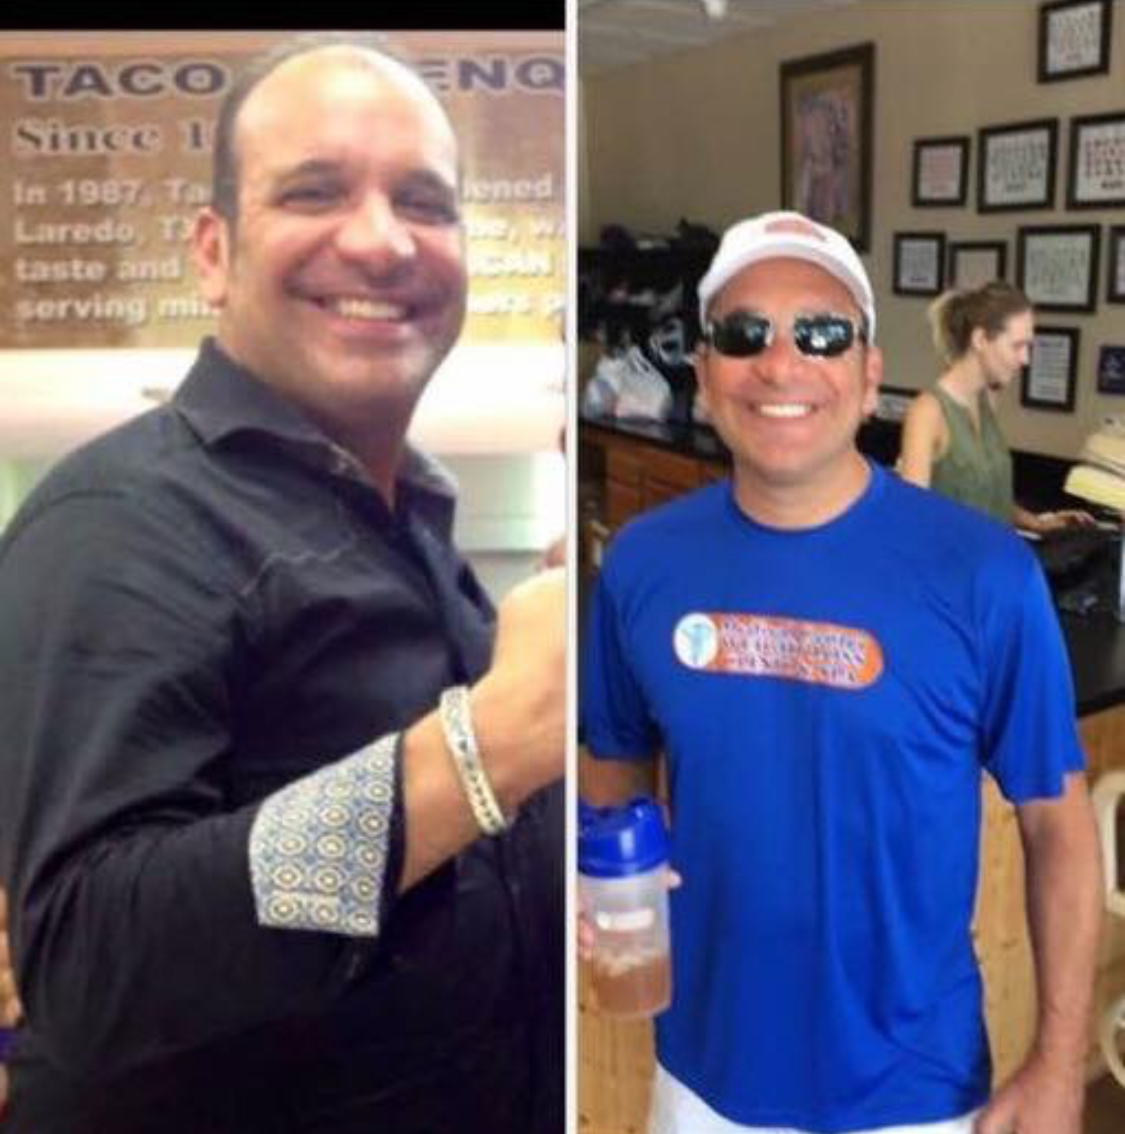 Arturo Lost 47 Pounds In 3 Weeks He Used The One Pound Per Day Program And Hormone Replacement Therapy Here At Medical Center Weight Loss Spa